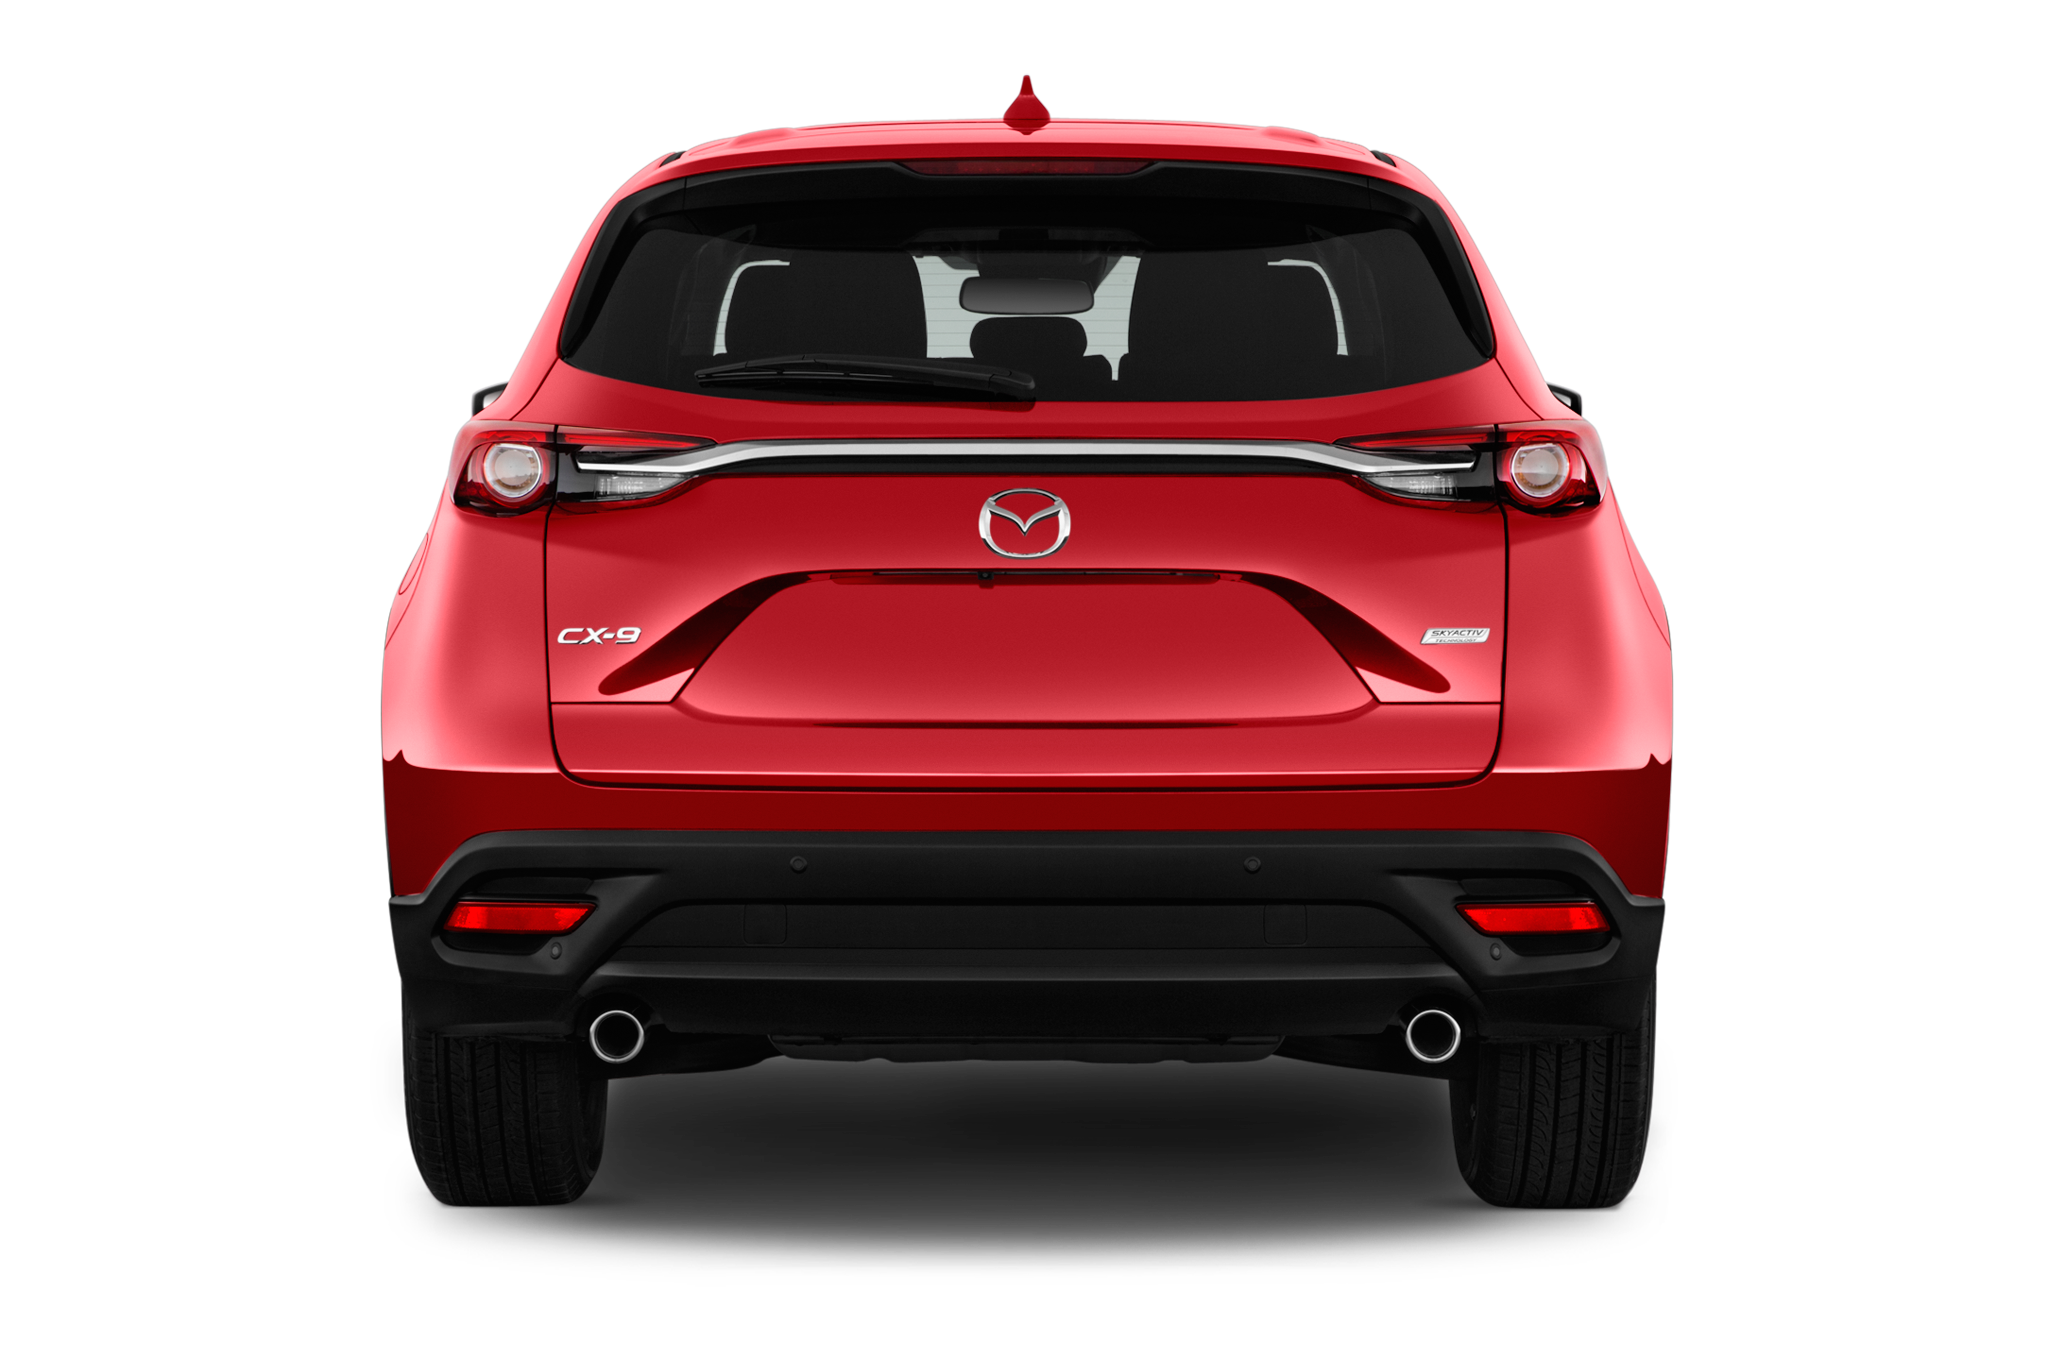 2016 mazda cx 9 touring fwd suv rear view 2016 mazda cx 9 priced at $32,420 automobile magazine